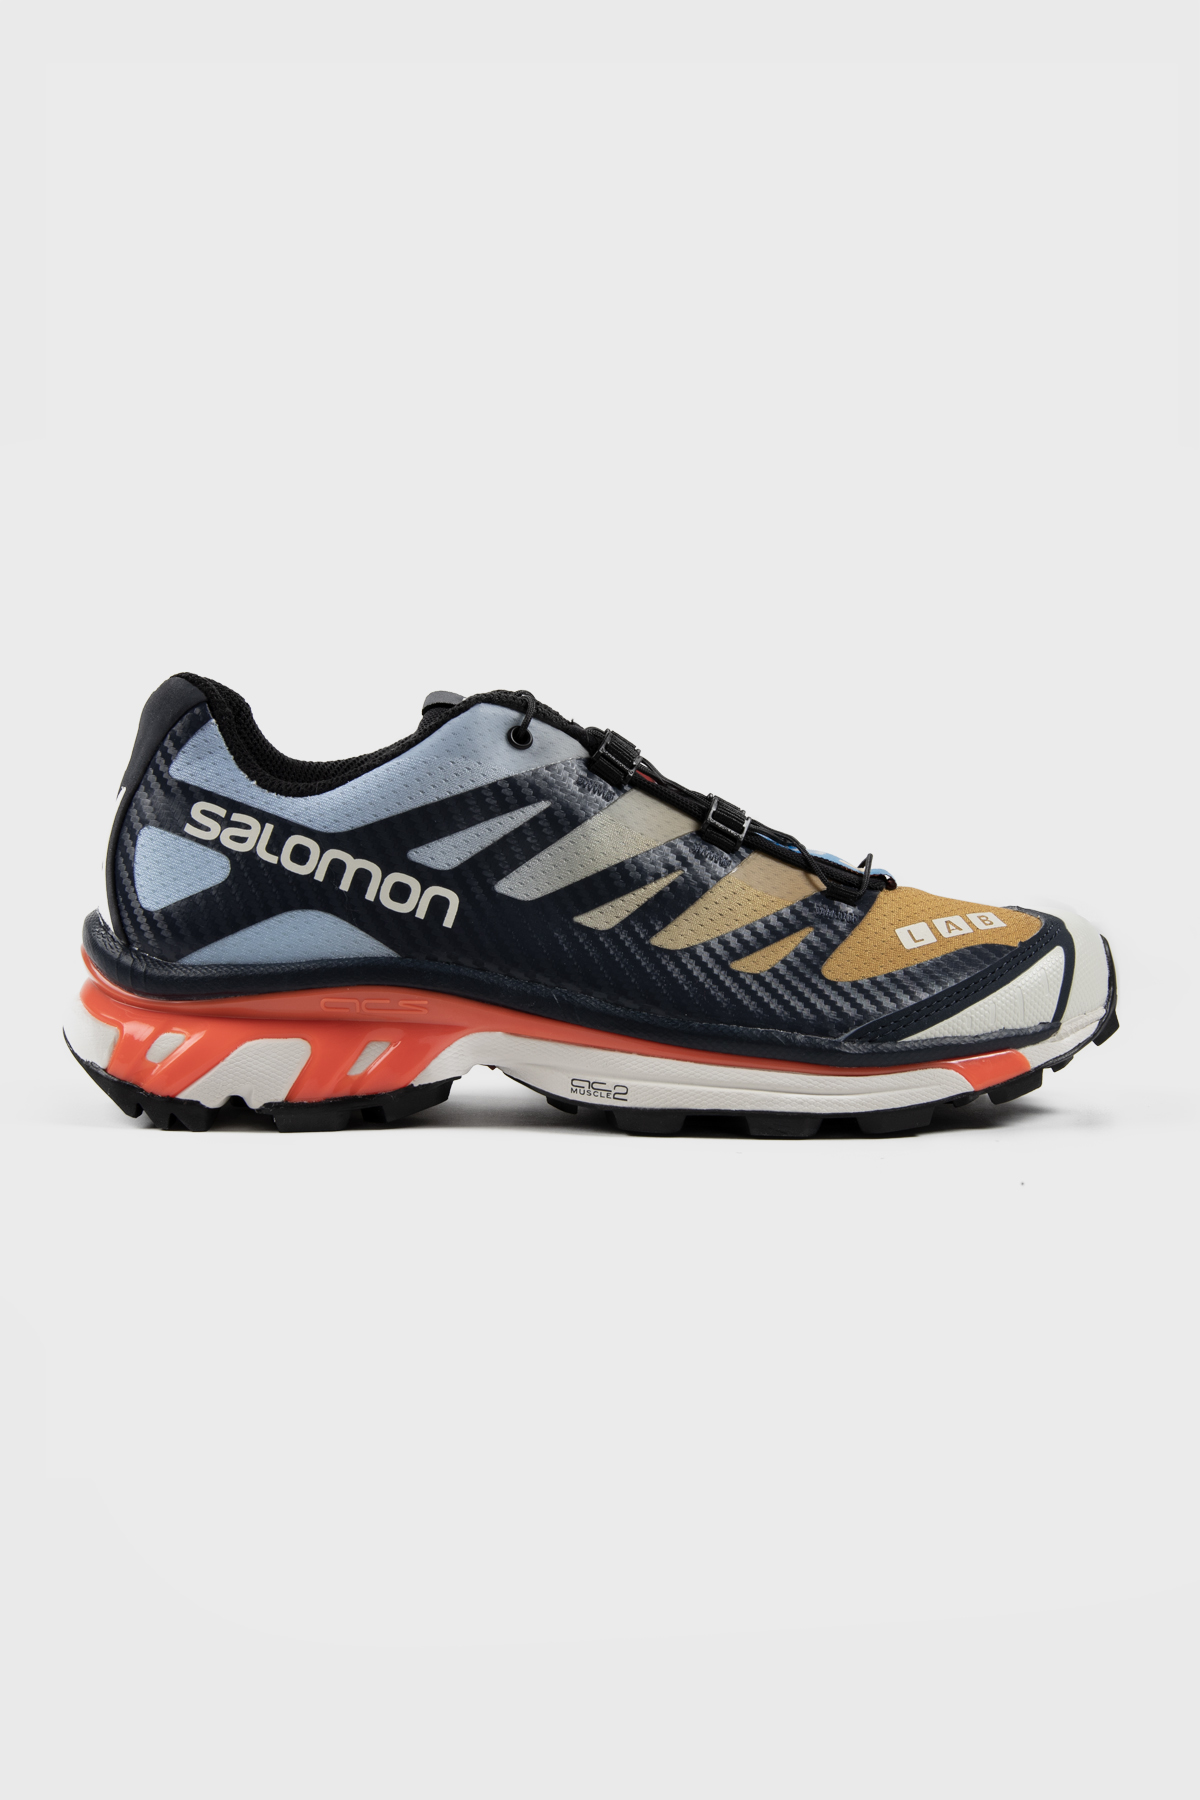 Salomon - S/LAB XT-4 ADV - Kentucky blue arrowwood red